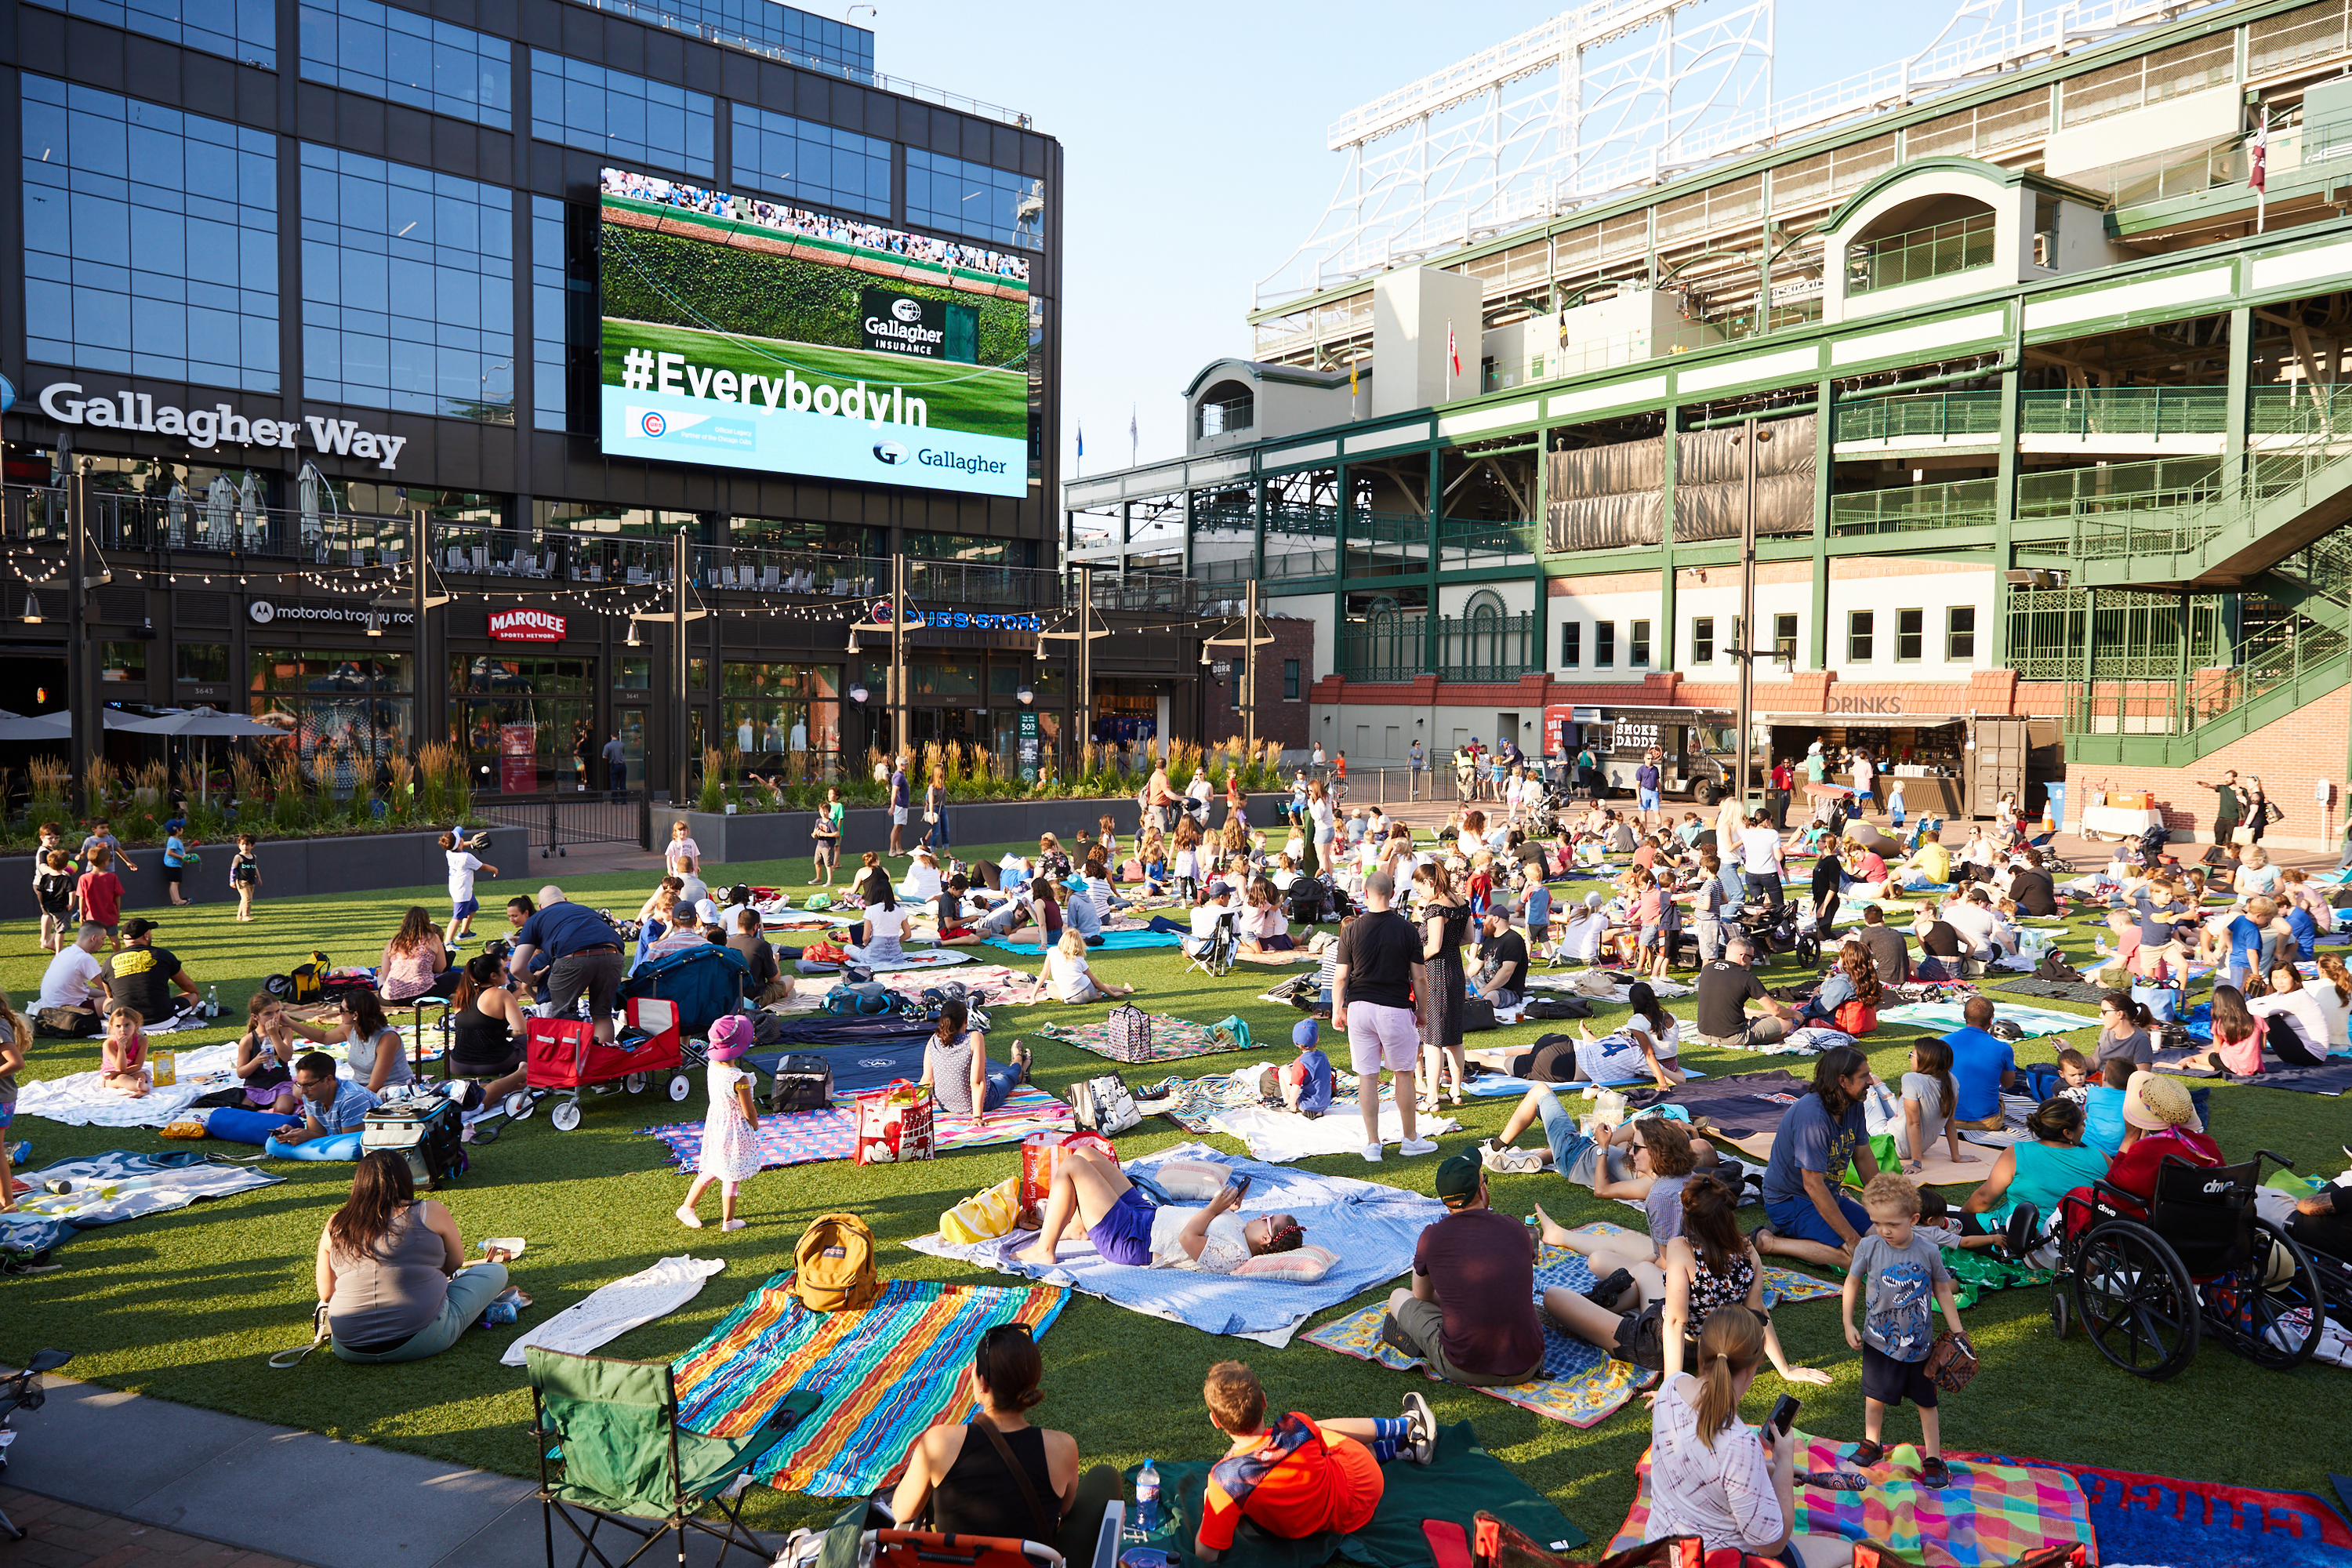 You can watch free movie screenings beside Wrigley Field this summer